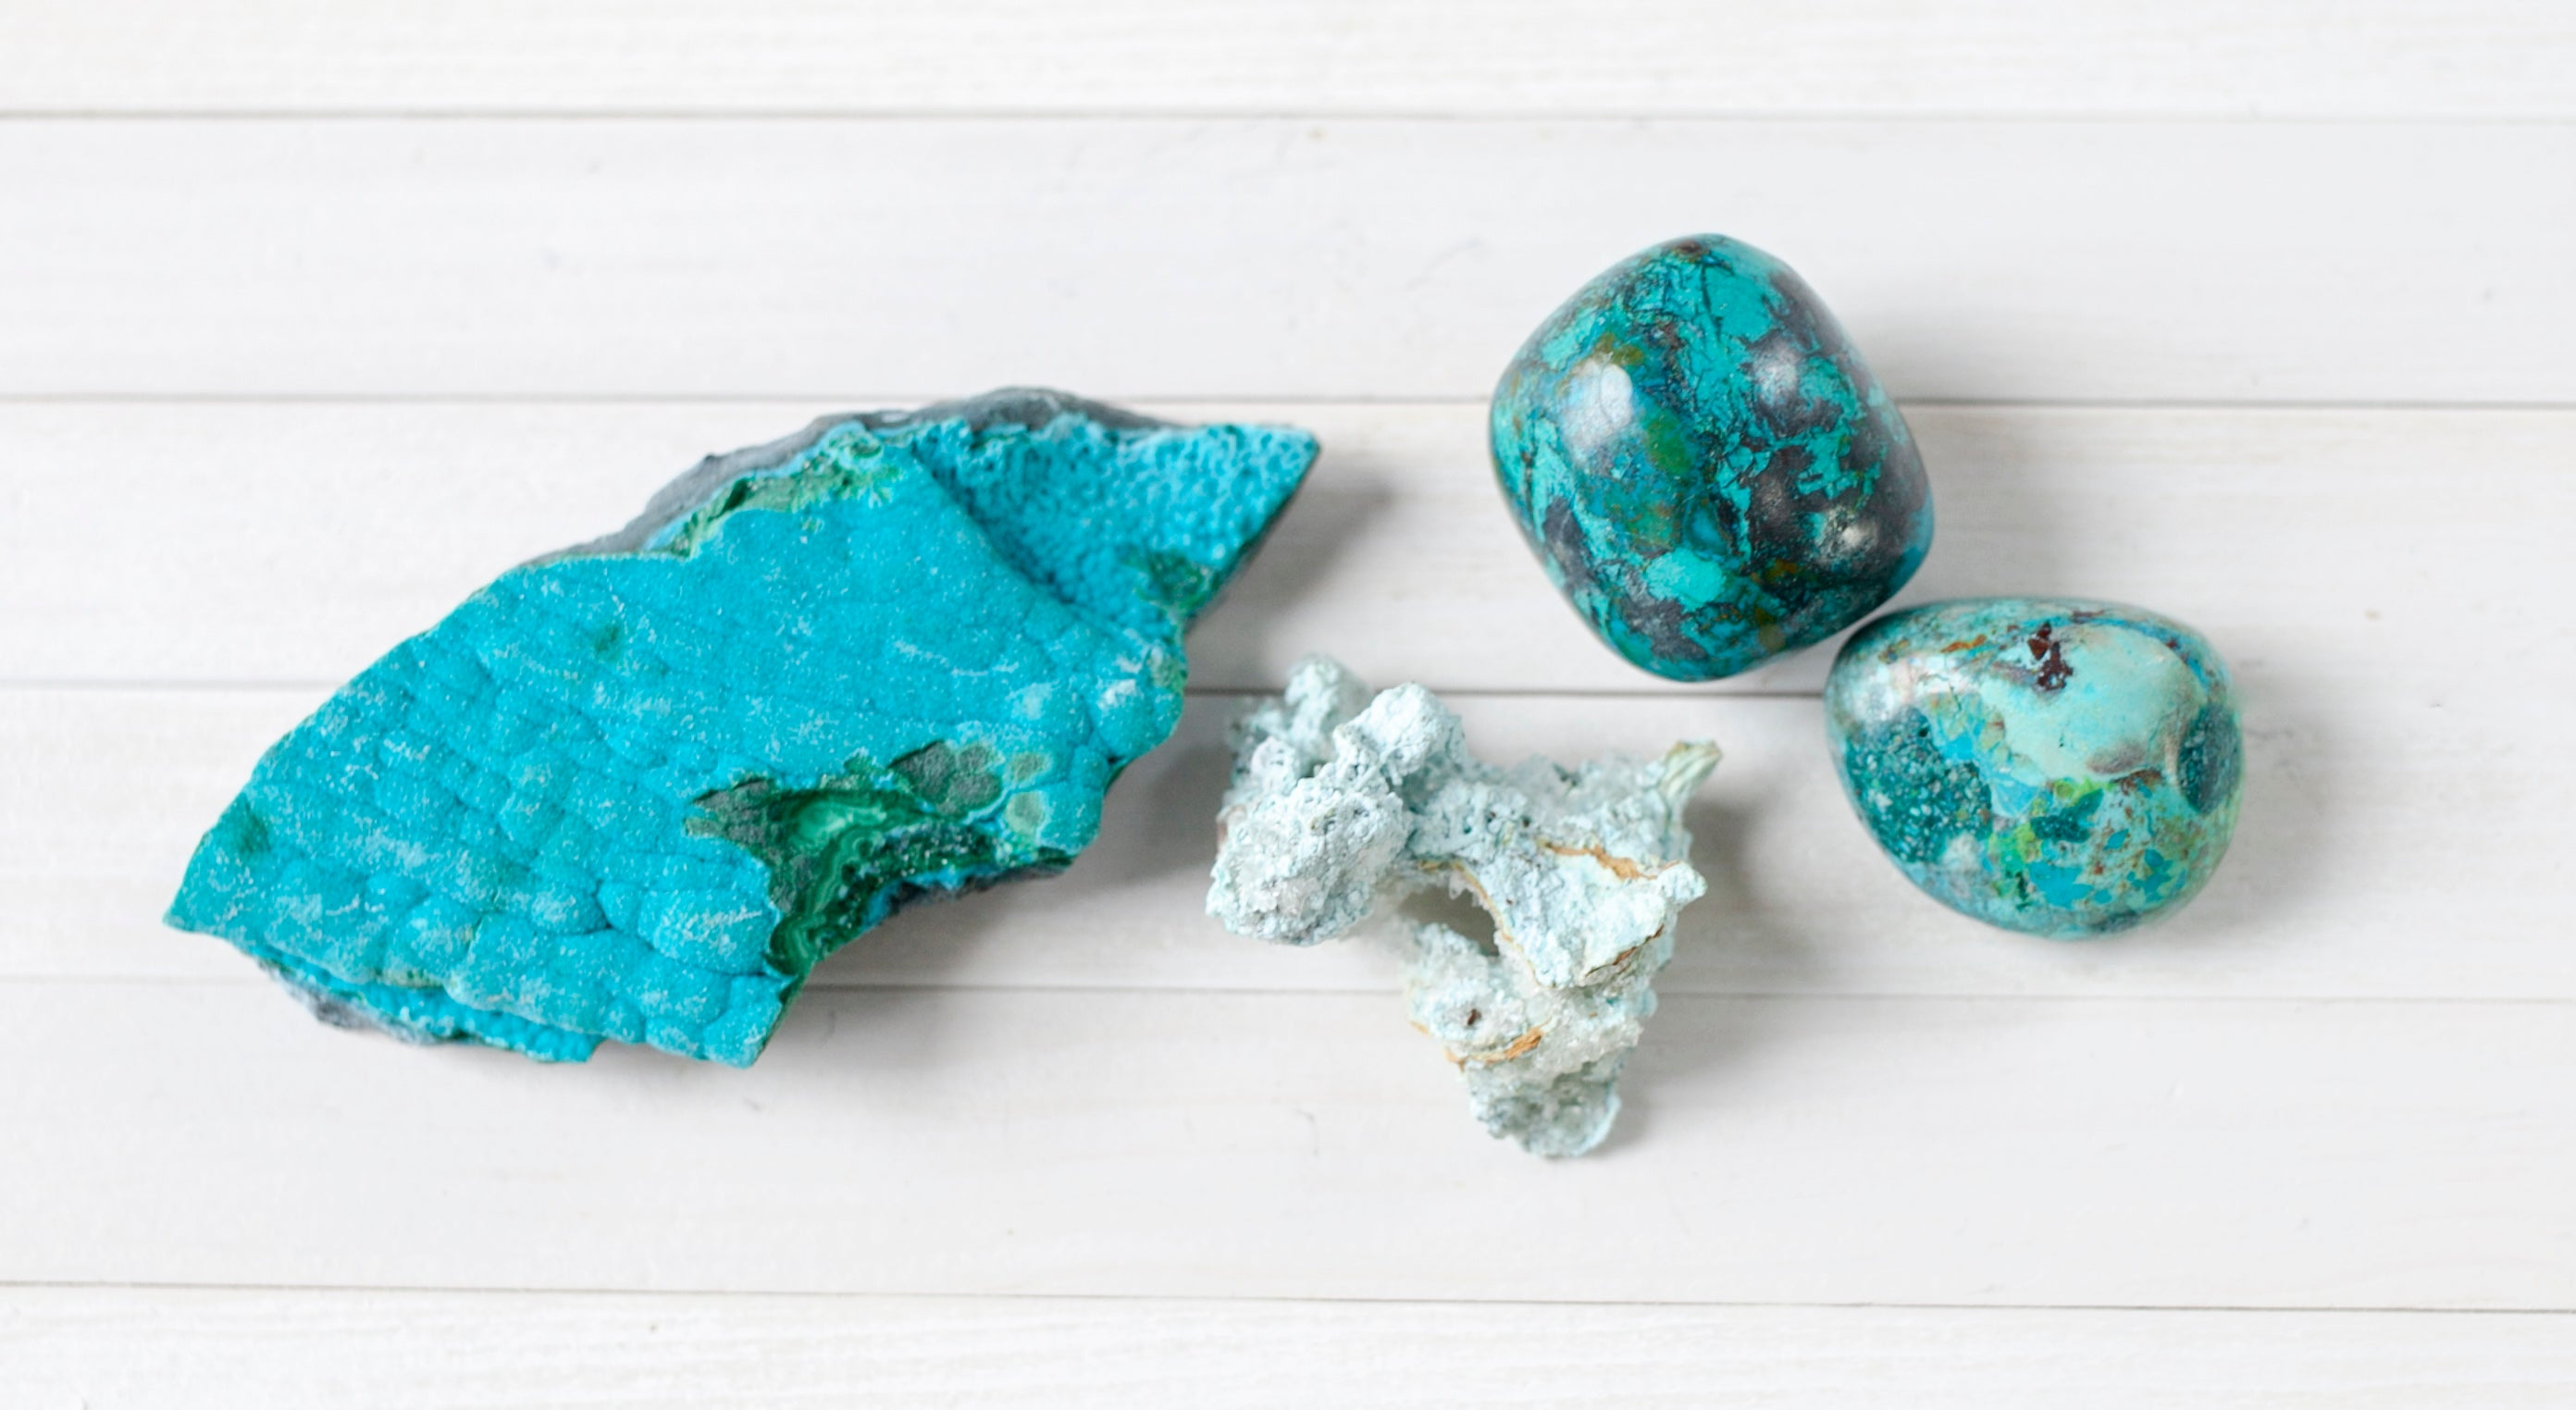 Raw and tumbled Chrysocolla. Chrysocolla is a unique mineral with vibrant teal color.